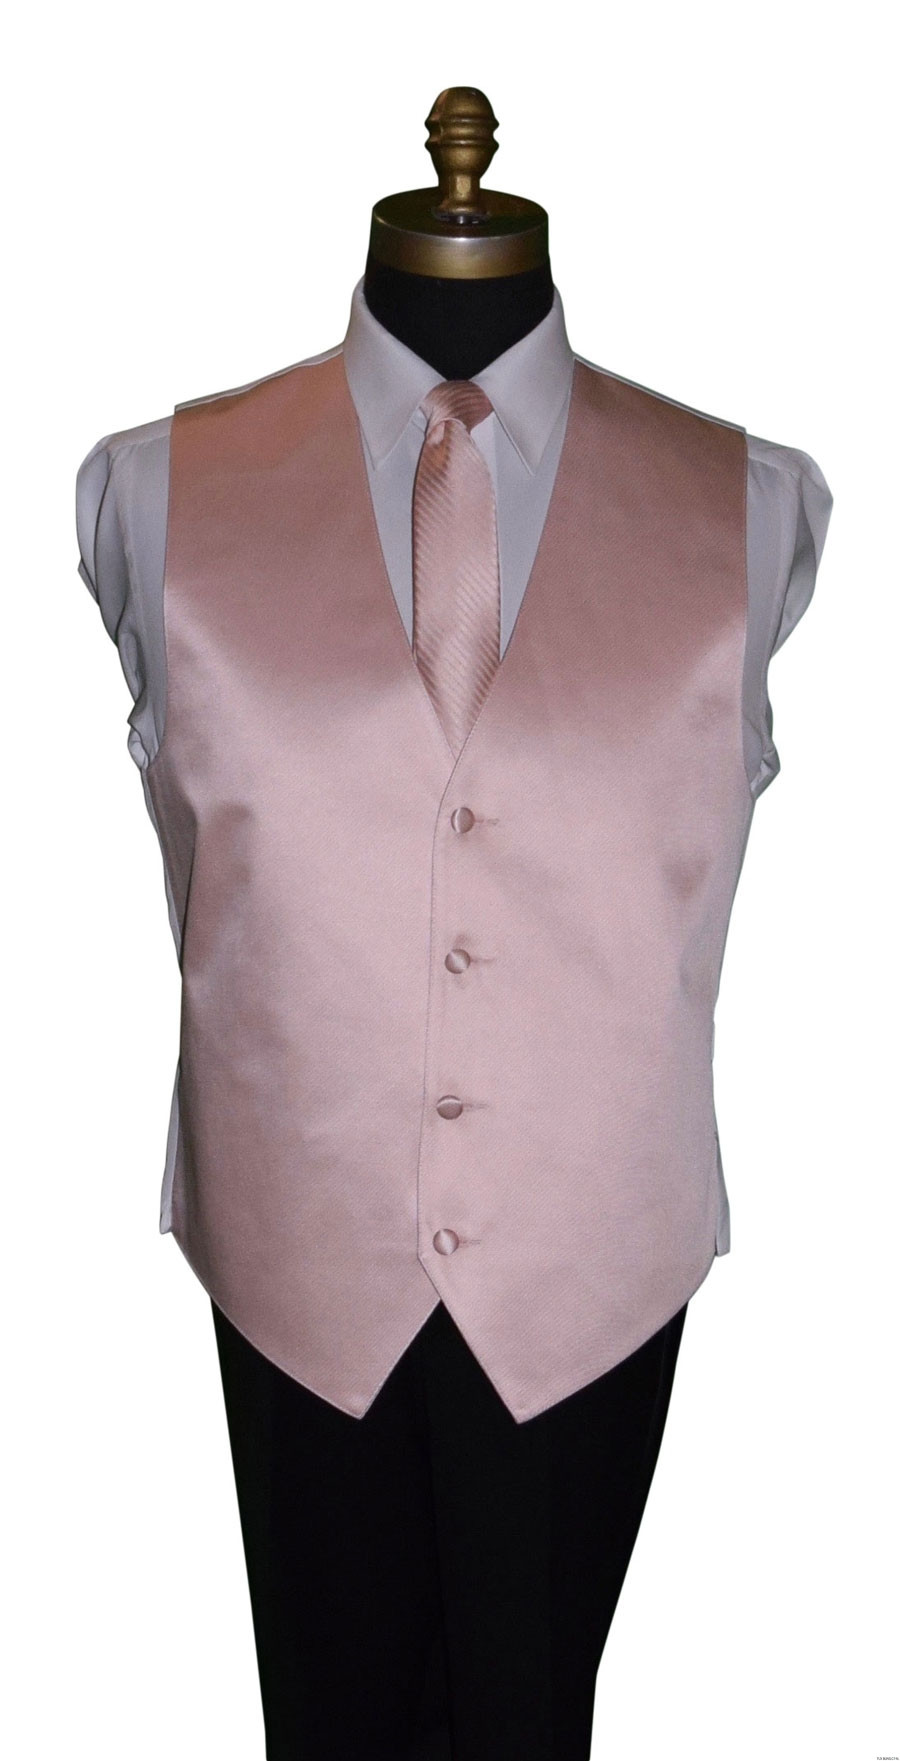 blush striped men's tie with blush vest for weddings by San Miguel Formals